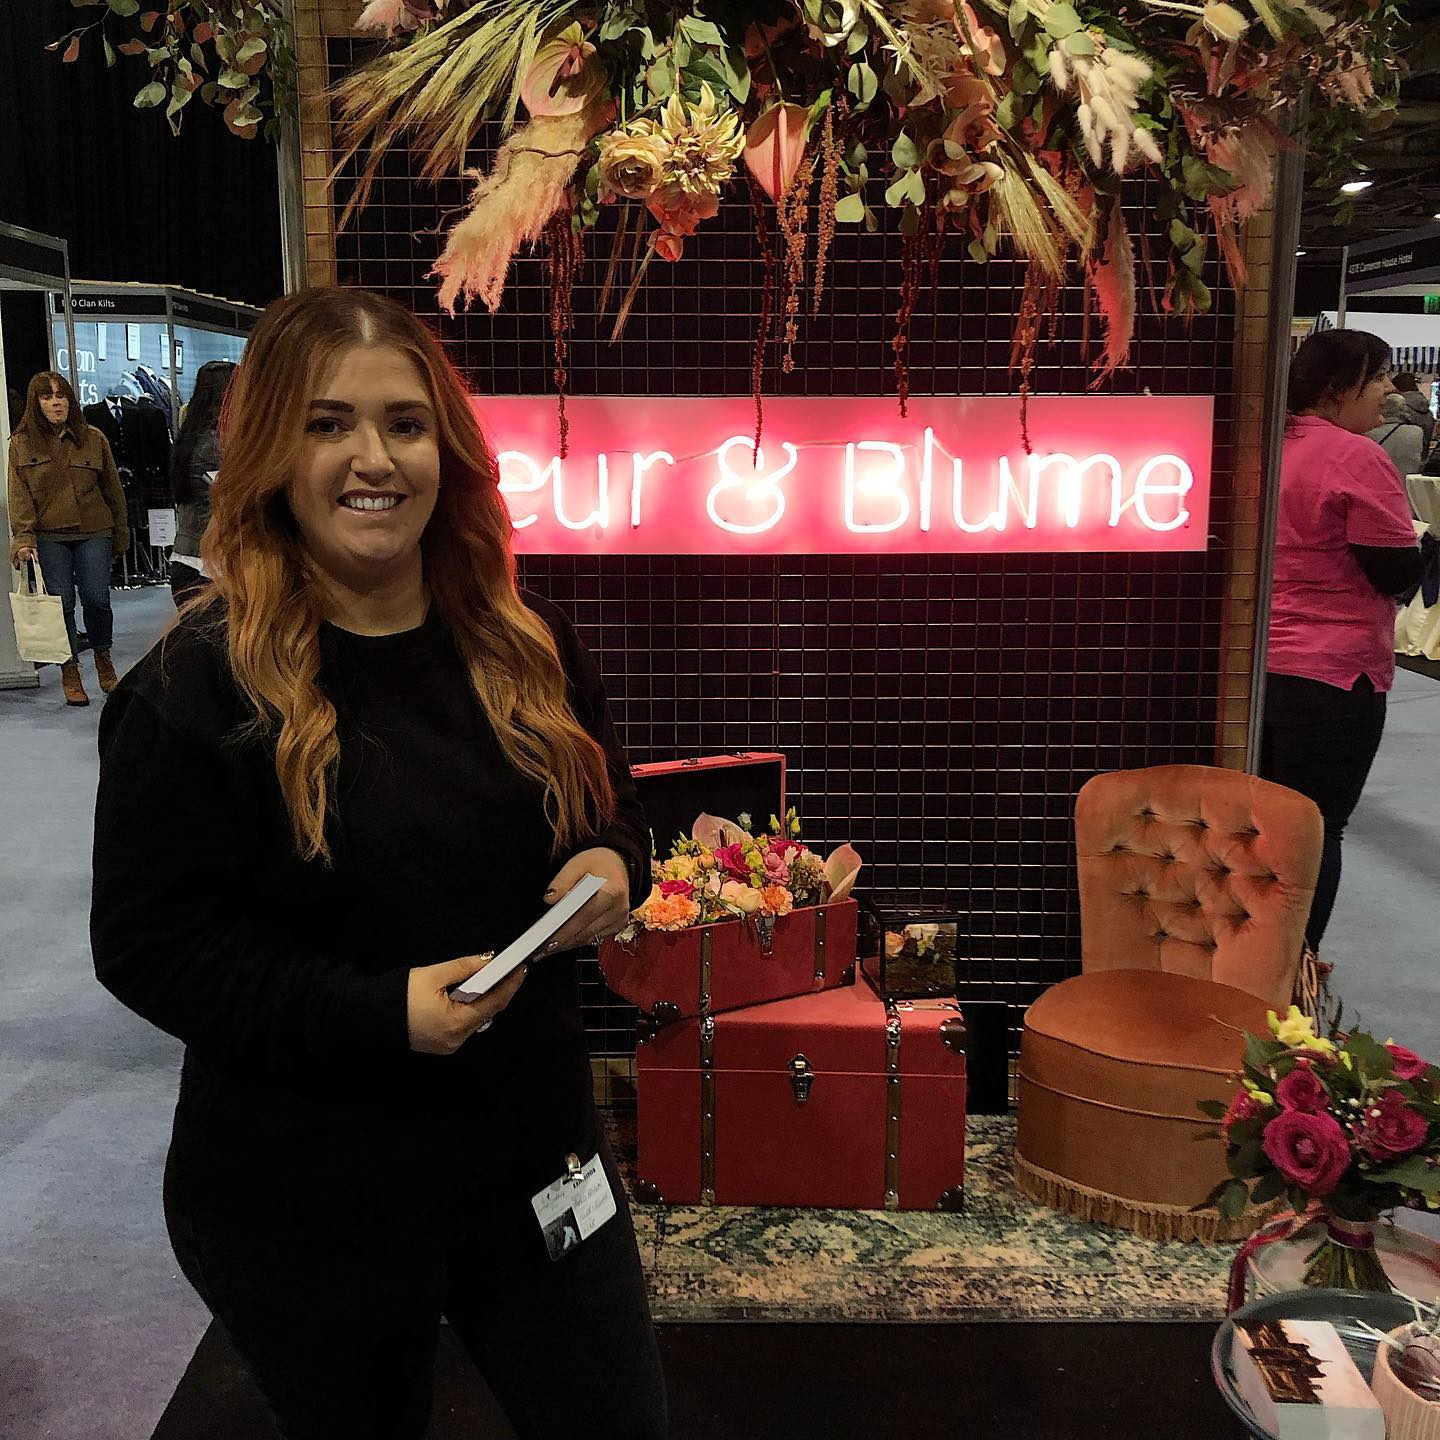 Ashley from Fleur and Blume